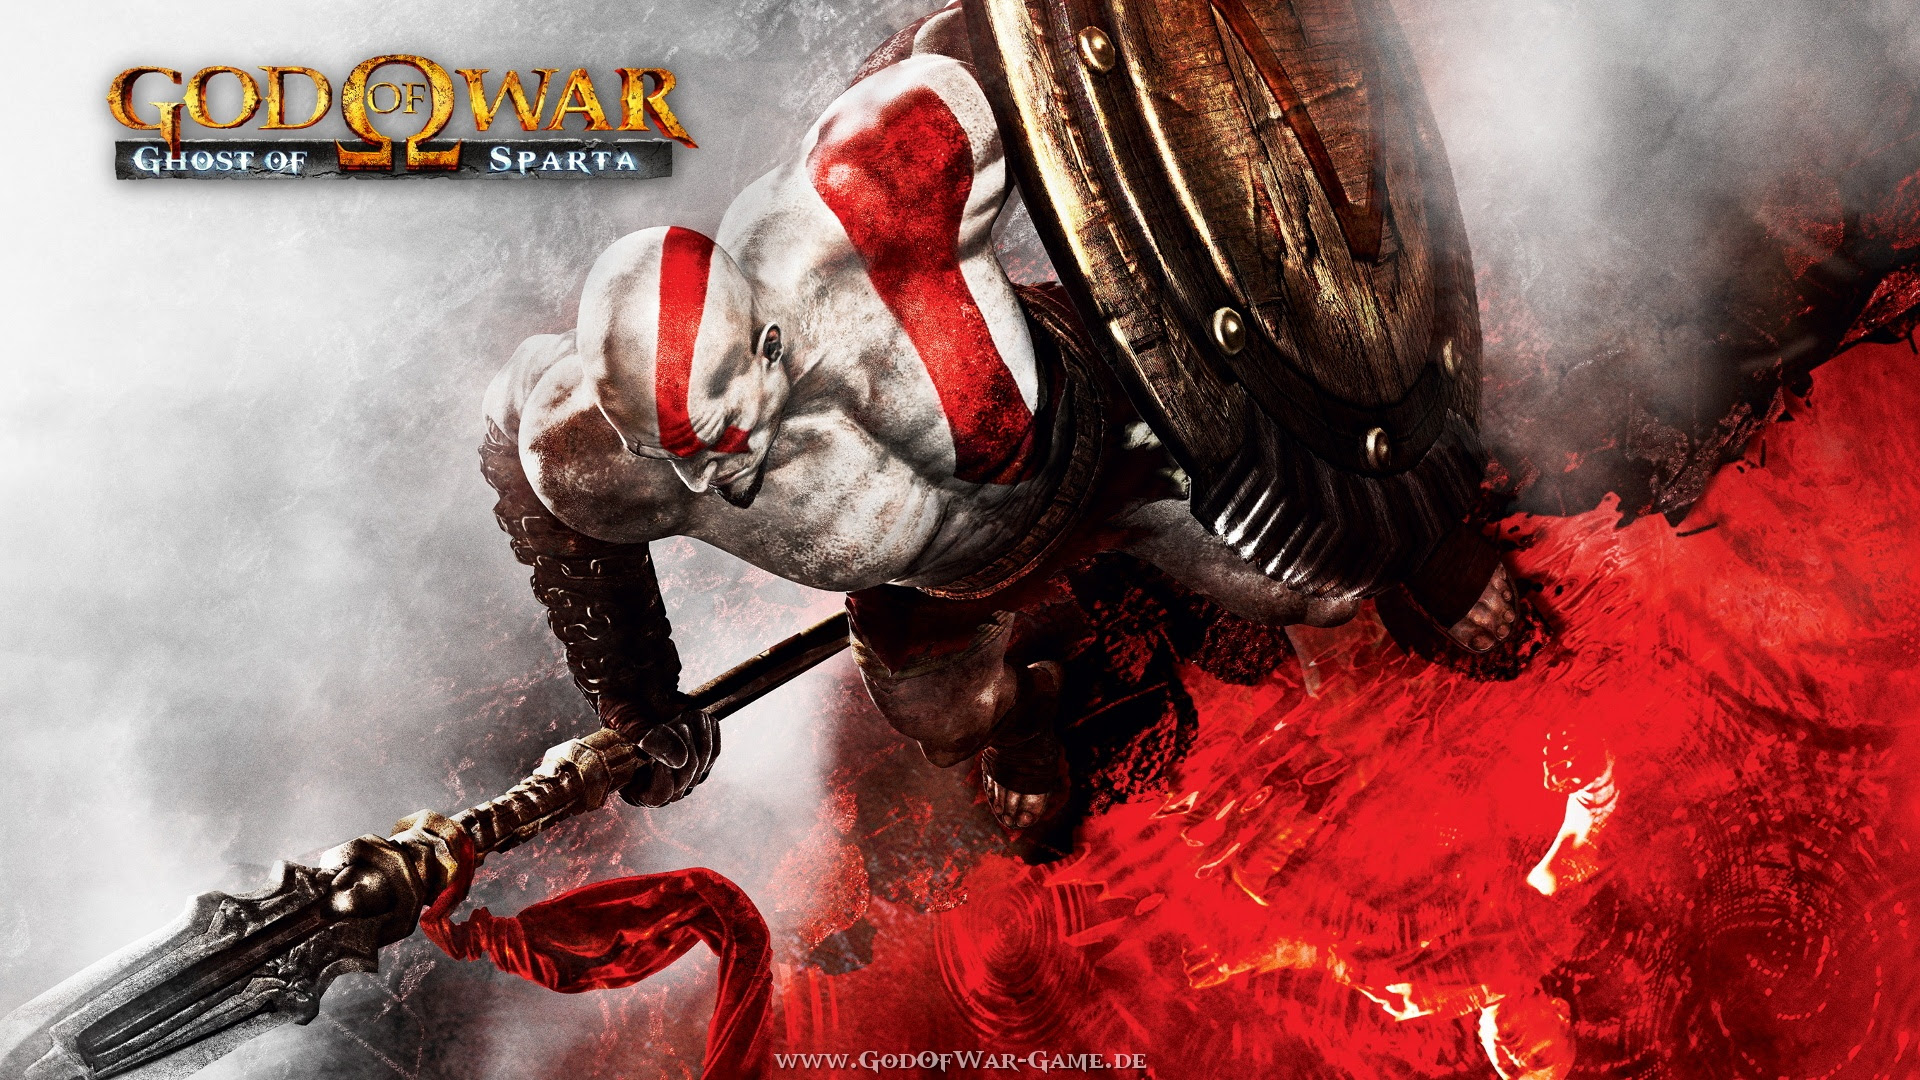 God Of War Ghost Of Sparta Wallpapers In Jpg Format For Free Download